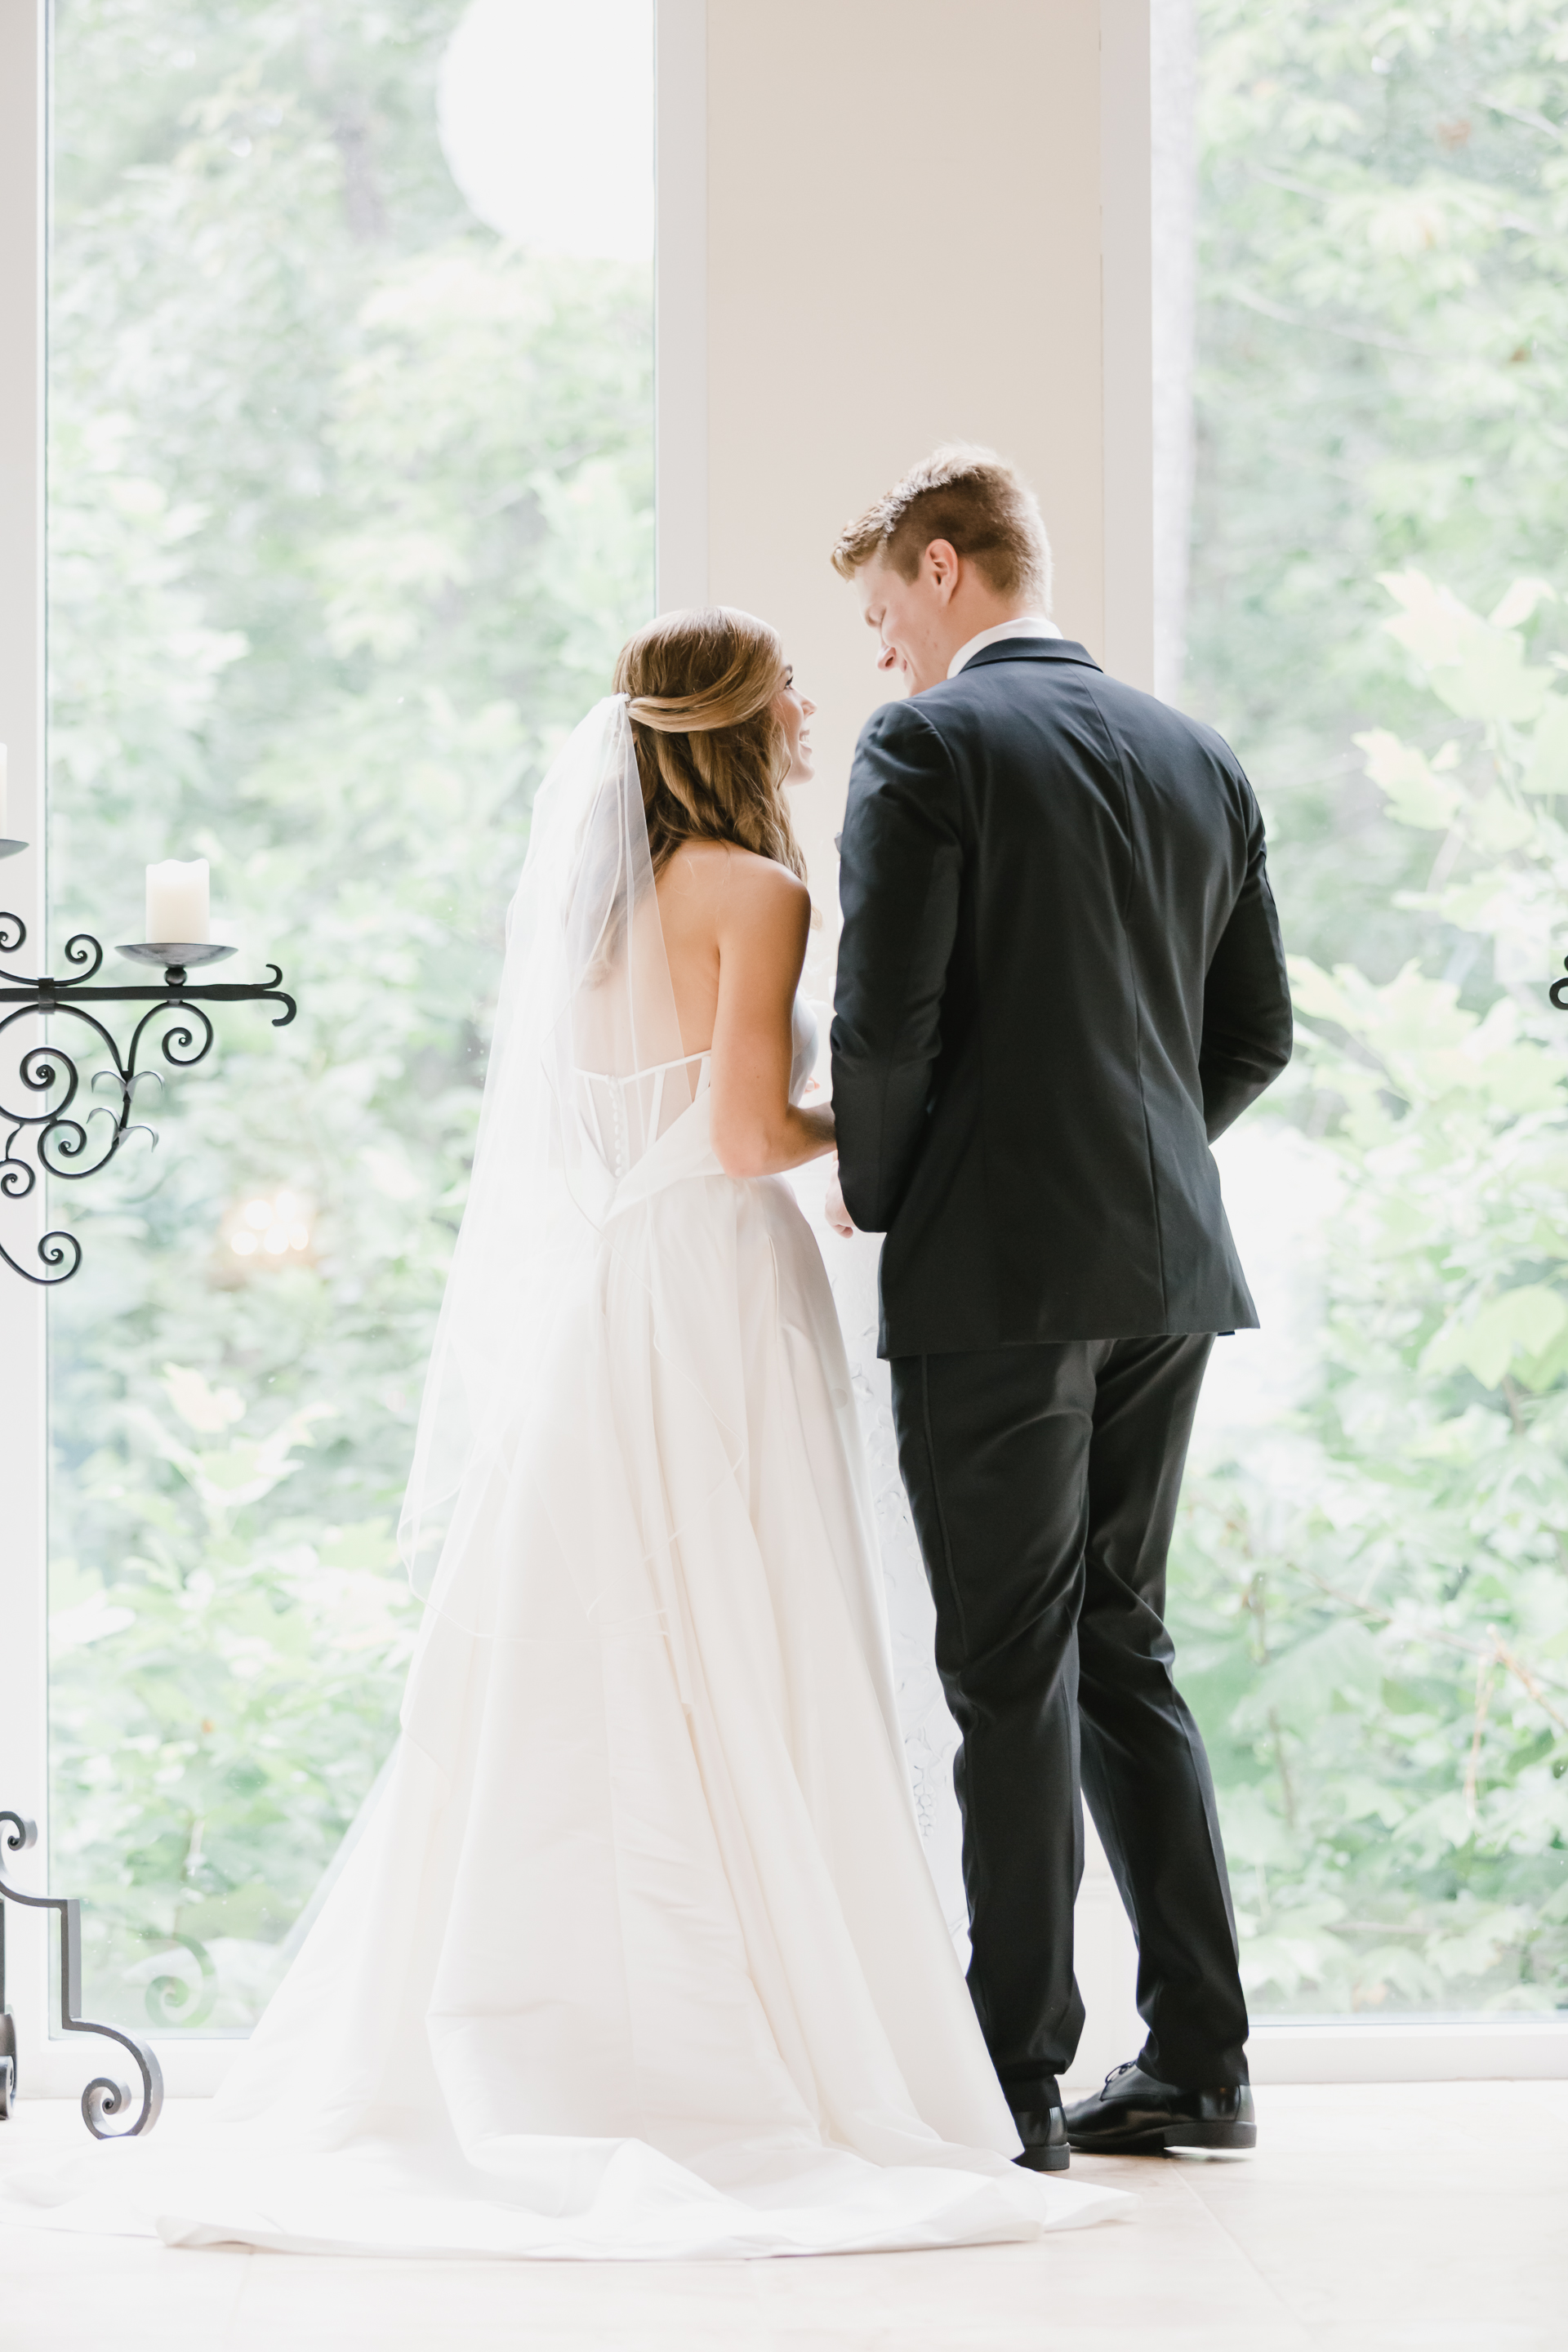 Gianna Keiko Atlanta NYC California Wedding Photographer_sneak peek-36.jpg